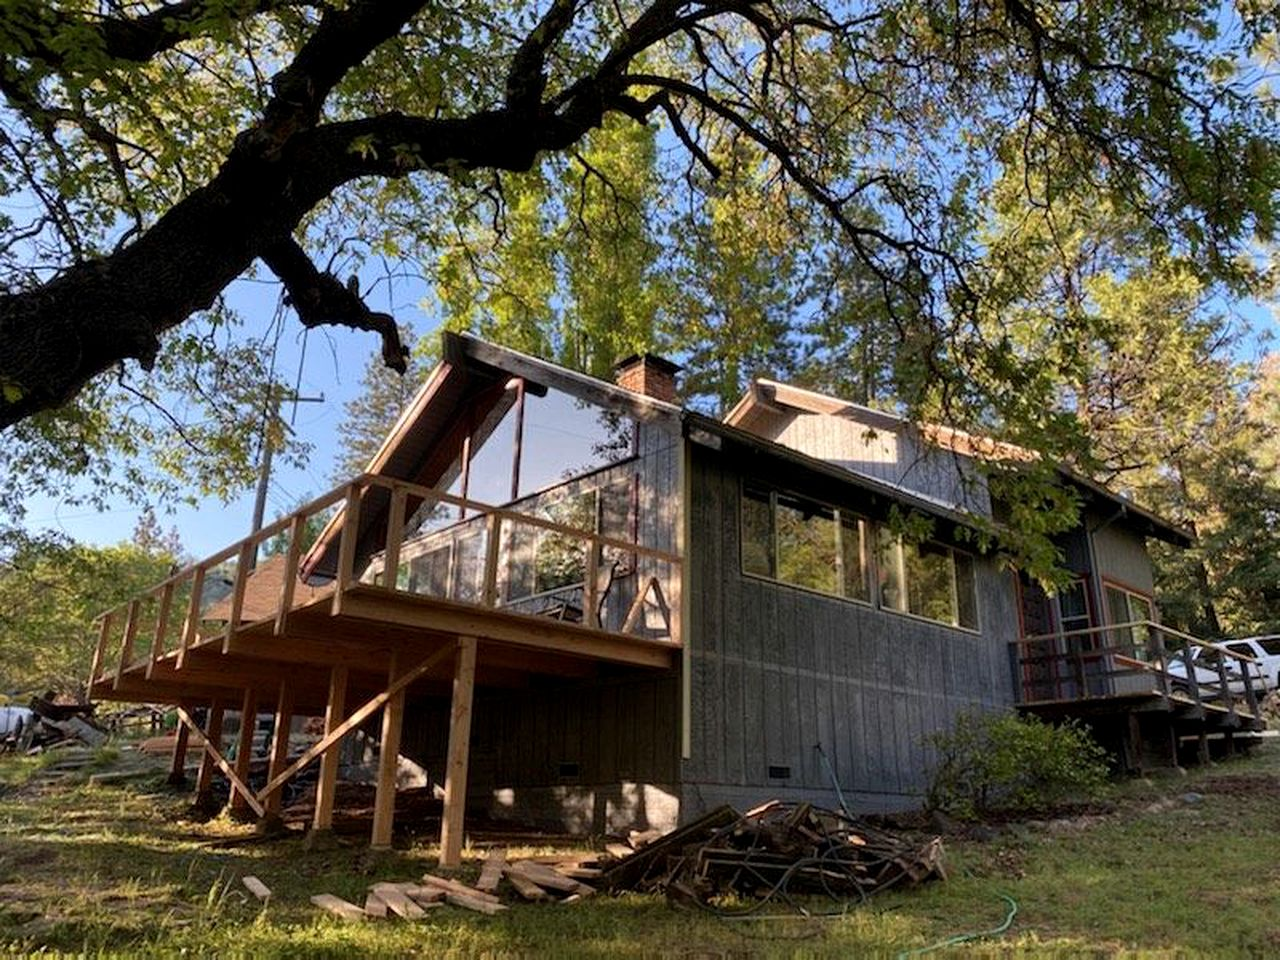 This cabin rental comes with a fabulous deck and is ideal for a getaway in California